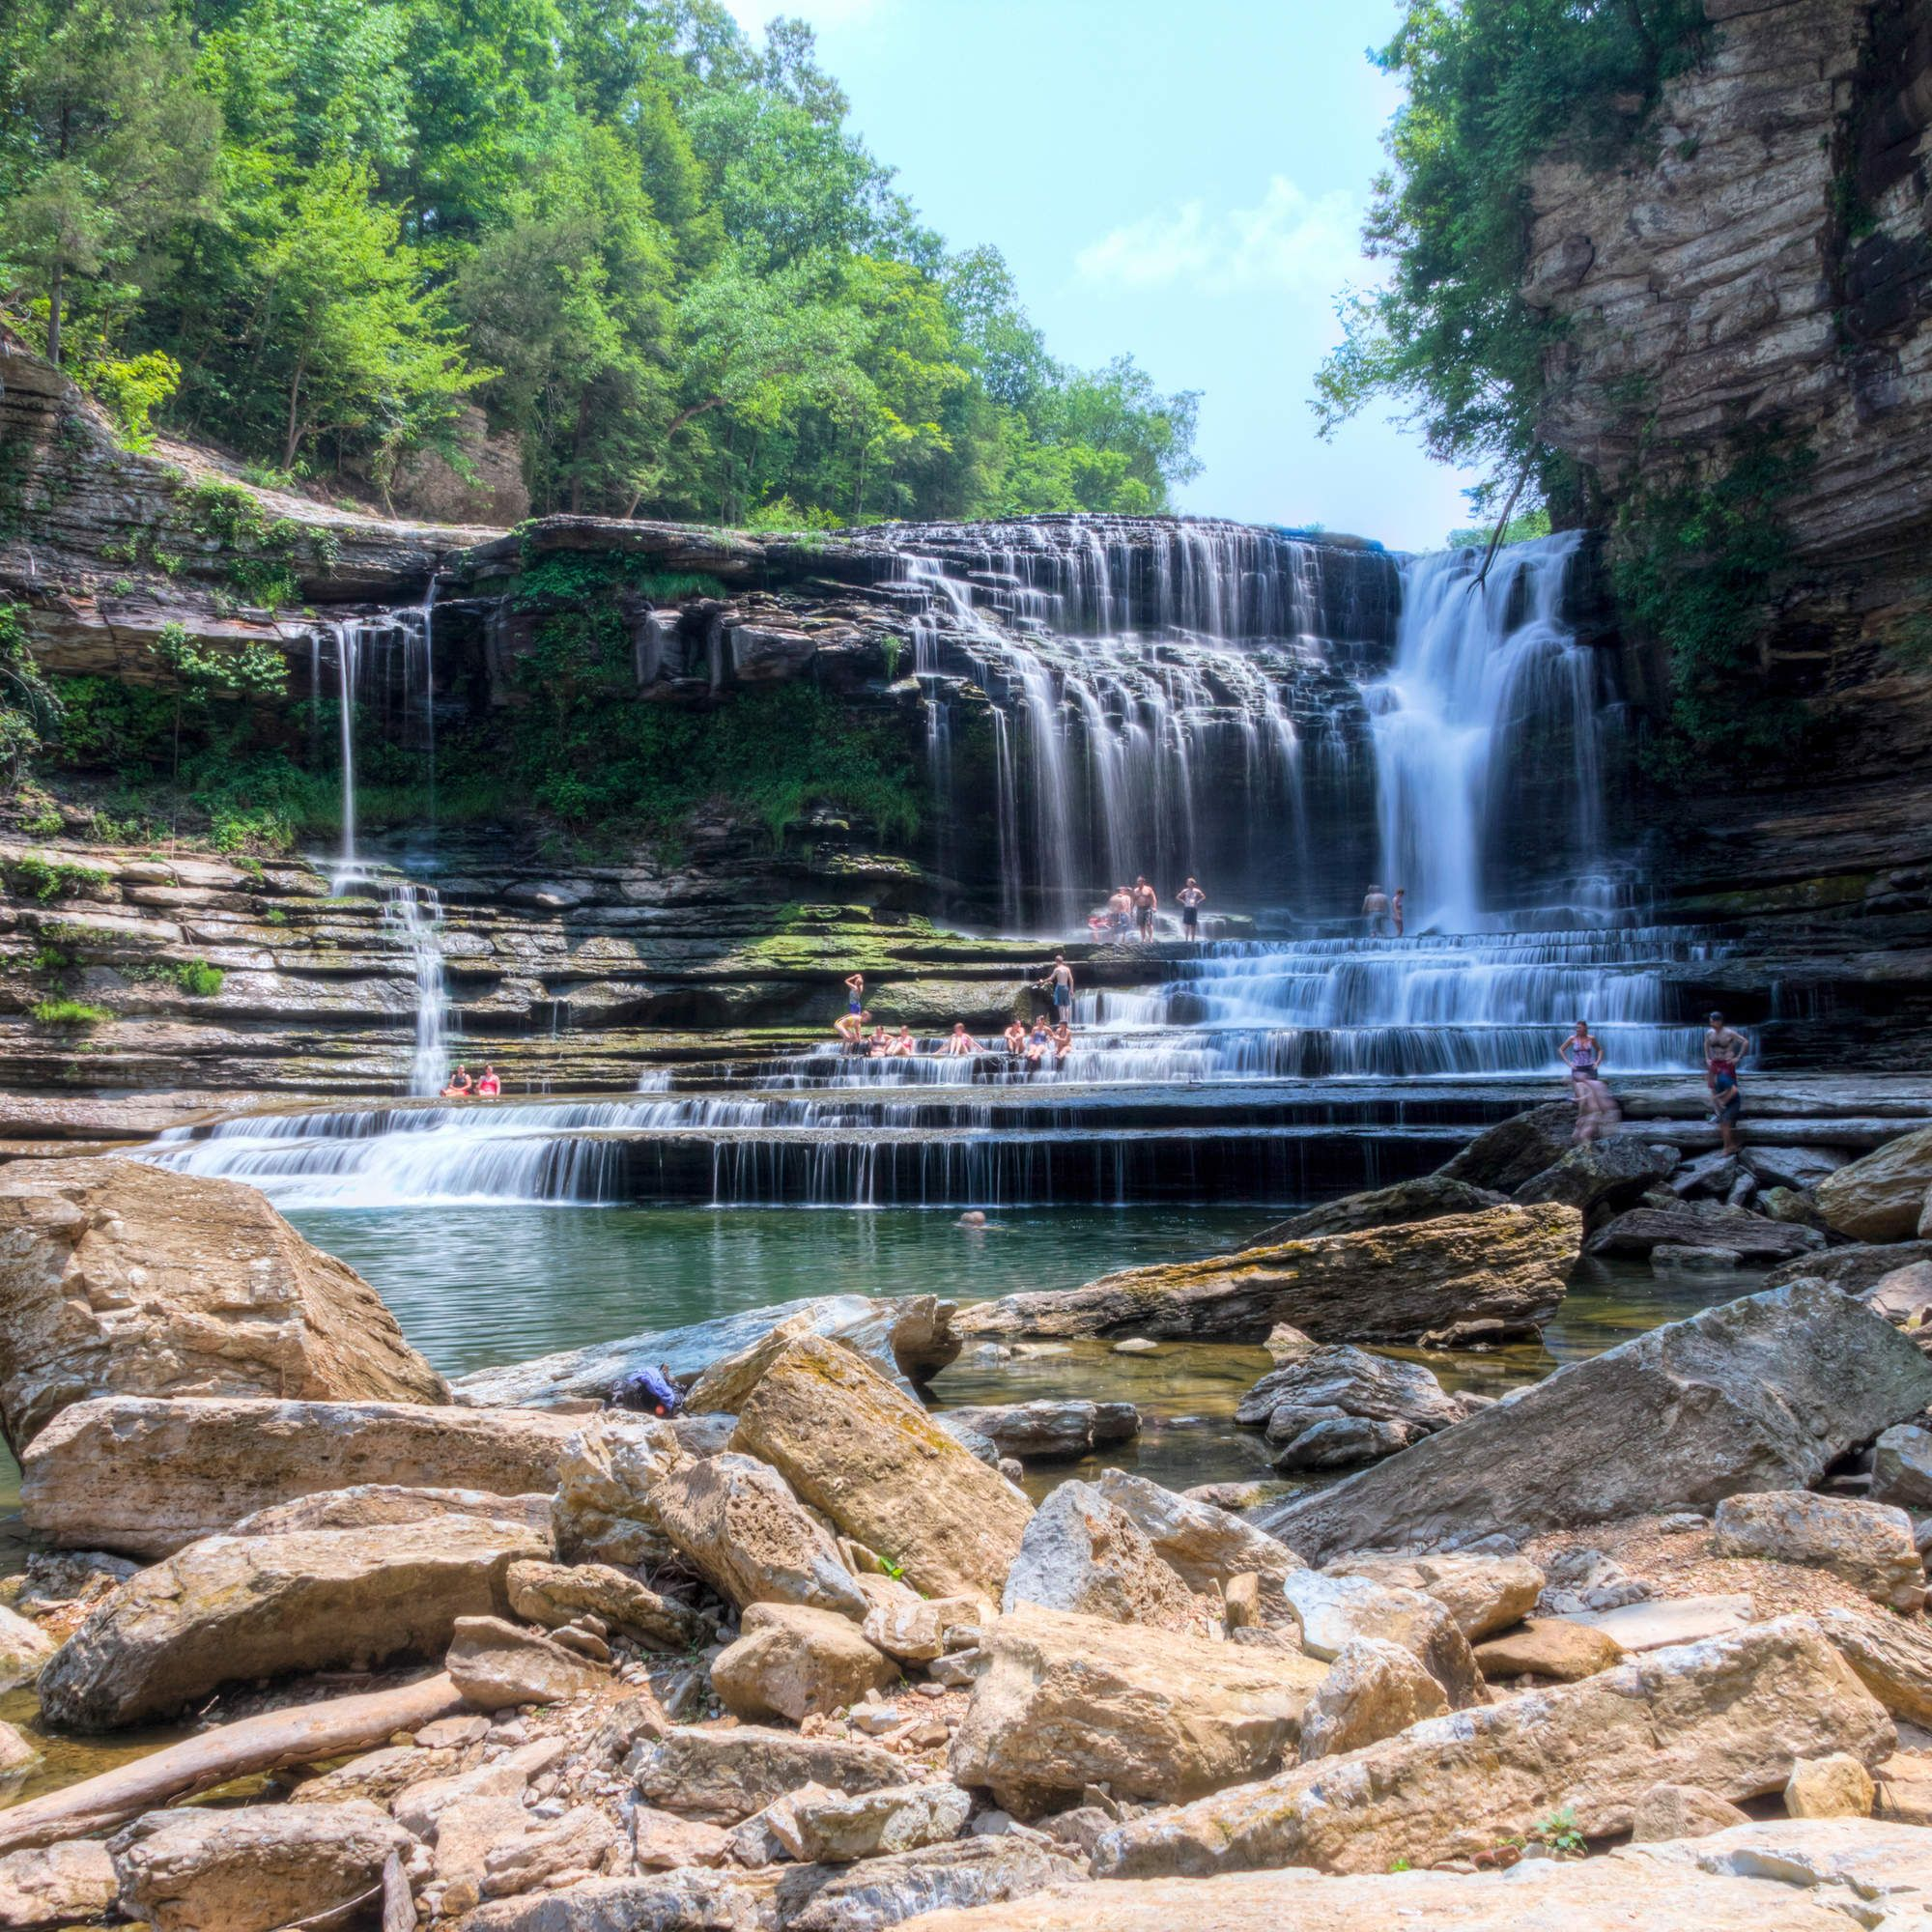 Waterfall Hikes Near Denver Colorado: The 11 Best Waterfall Hikes Around Nashville, Ranked By